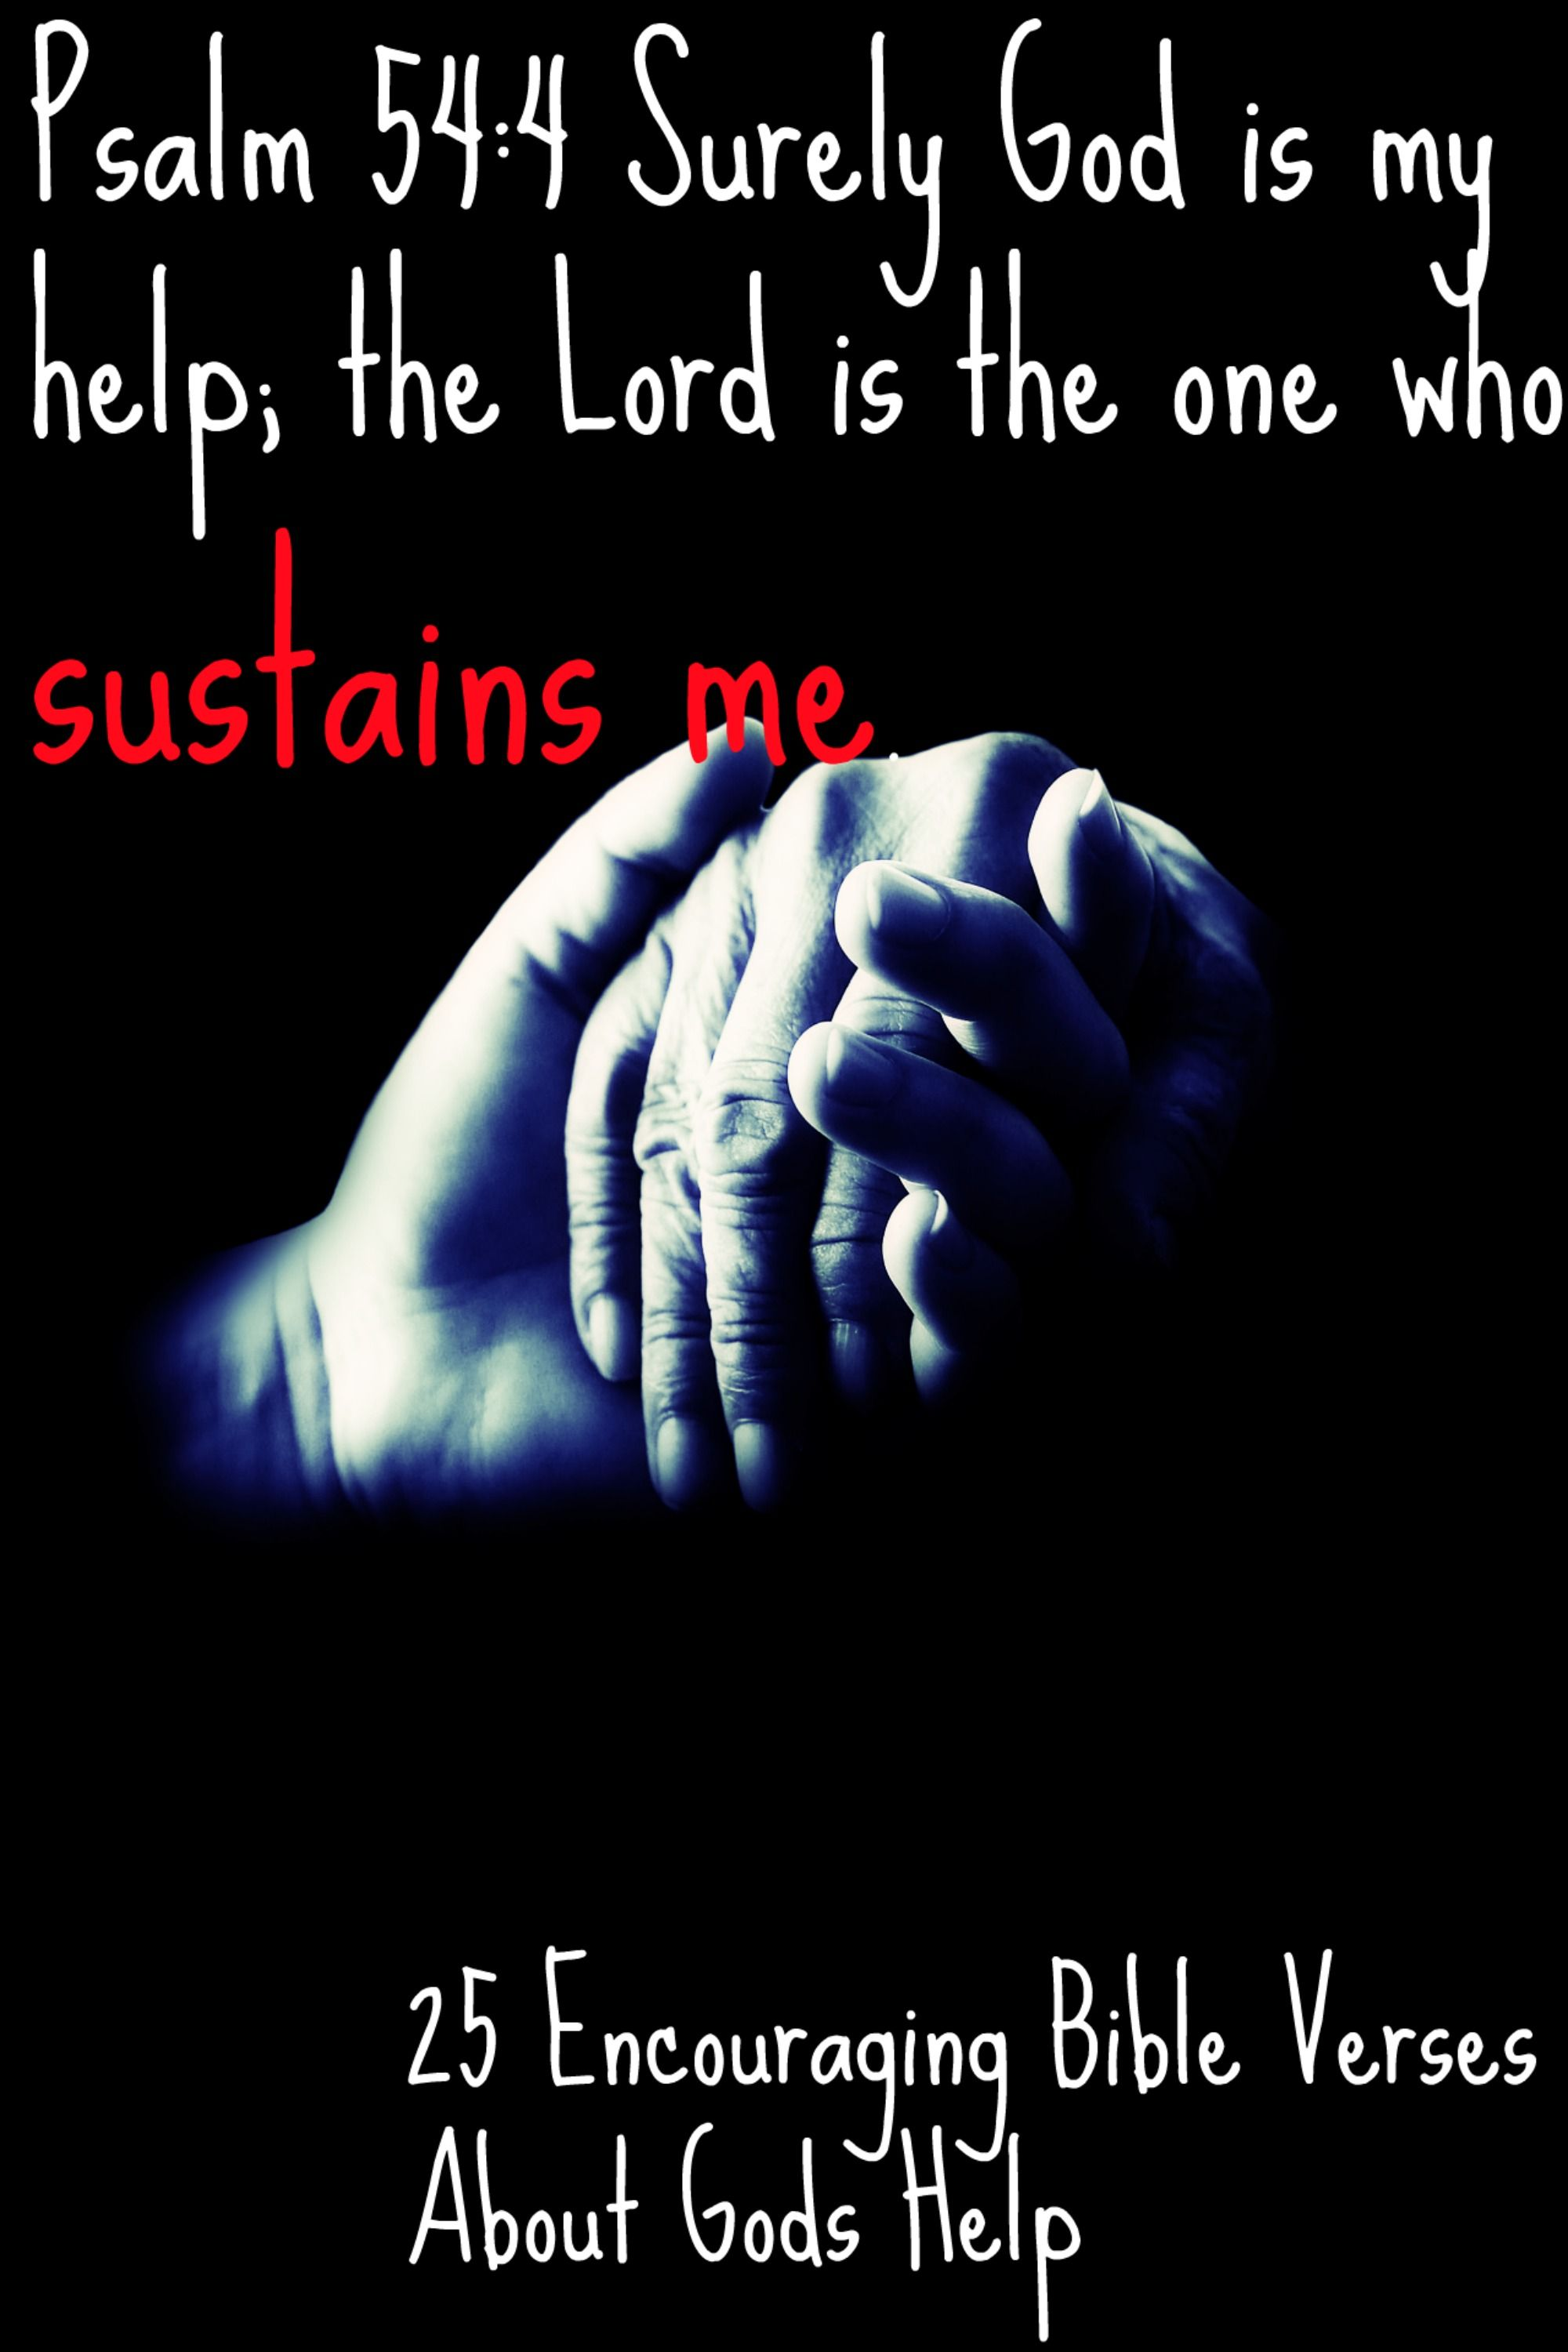 Psalm 54:4 Surely God is my help; the Lord is the one who sustains me. CLICK IMAGE TO READ 25 Encouraging Bible Verses About God's Help! #bible #bibleverses #biblequotes #help #psalm